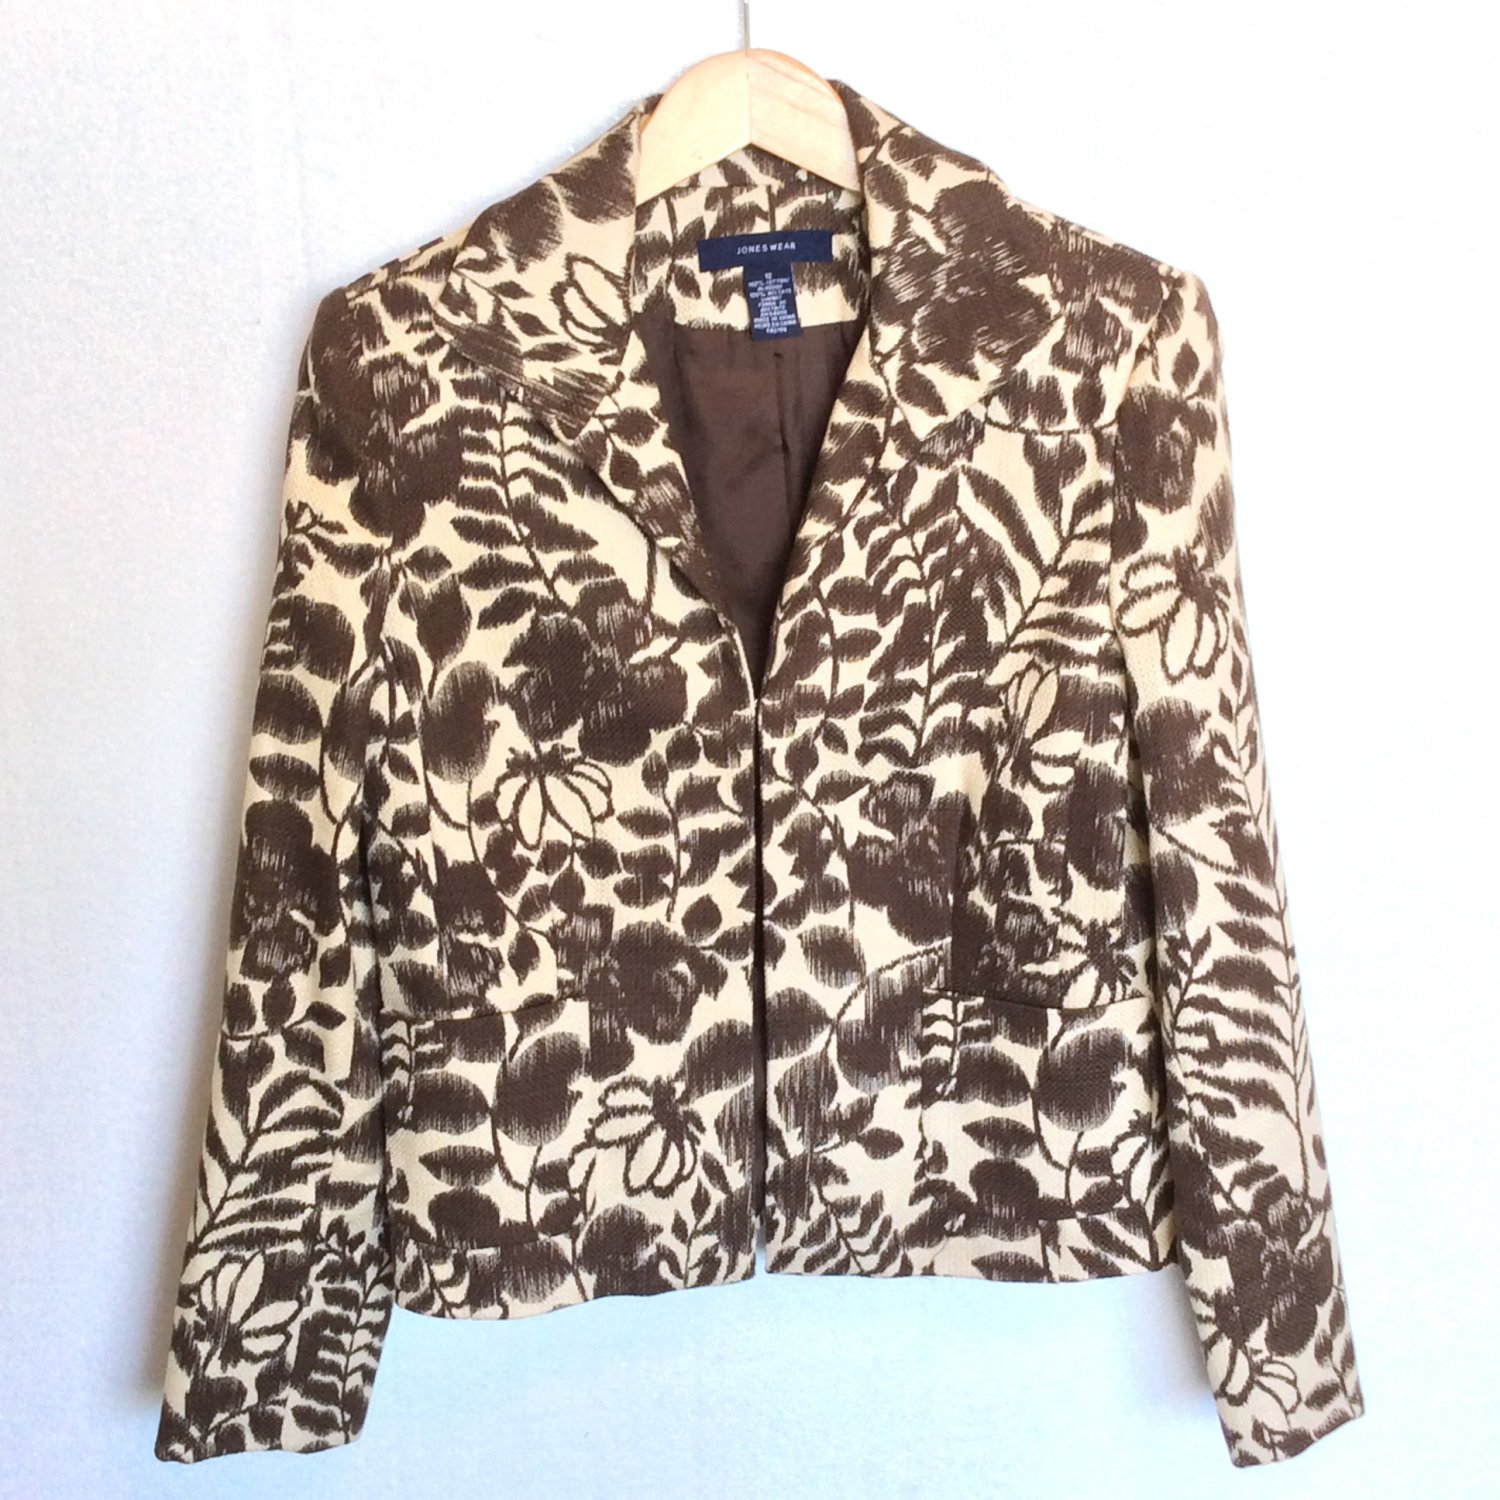 Jones Wear Cotton Blazer Jacket Cream & Brown Floral Career Wear to Work Women's Size 12 (Large) L